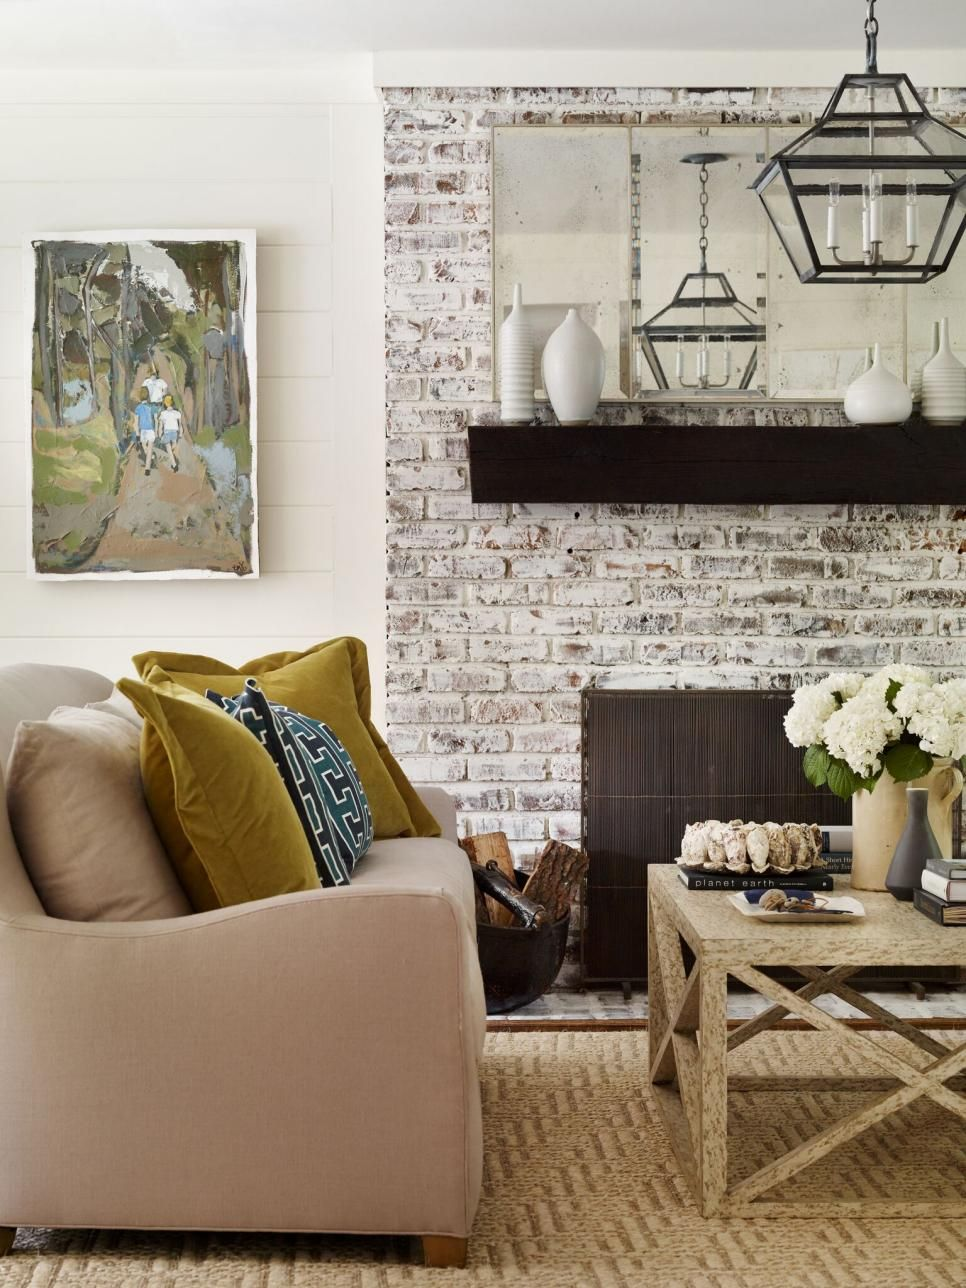 This Living Room Features A Whitewashed Fireplace With A